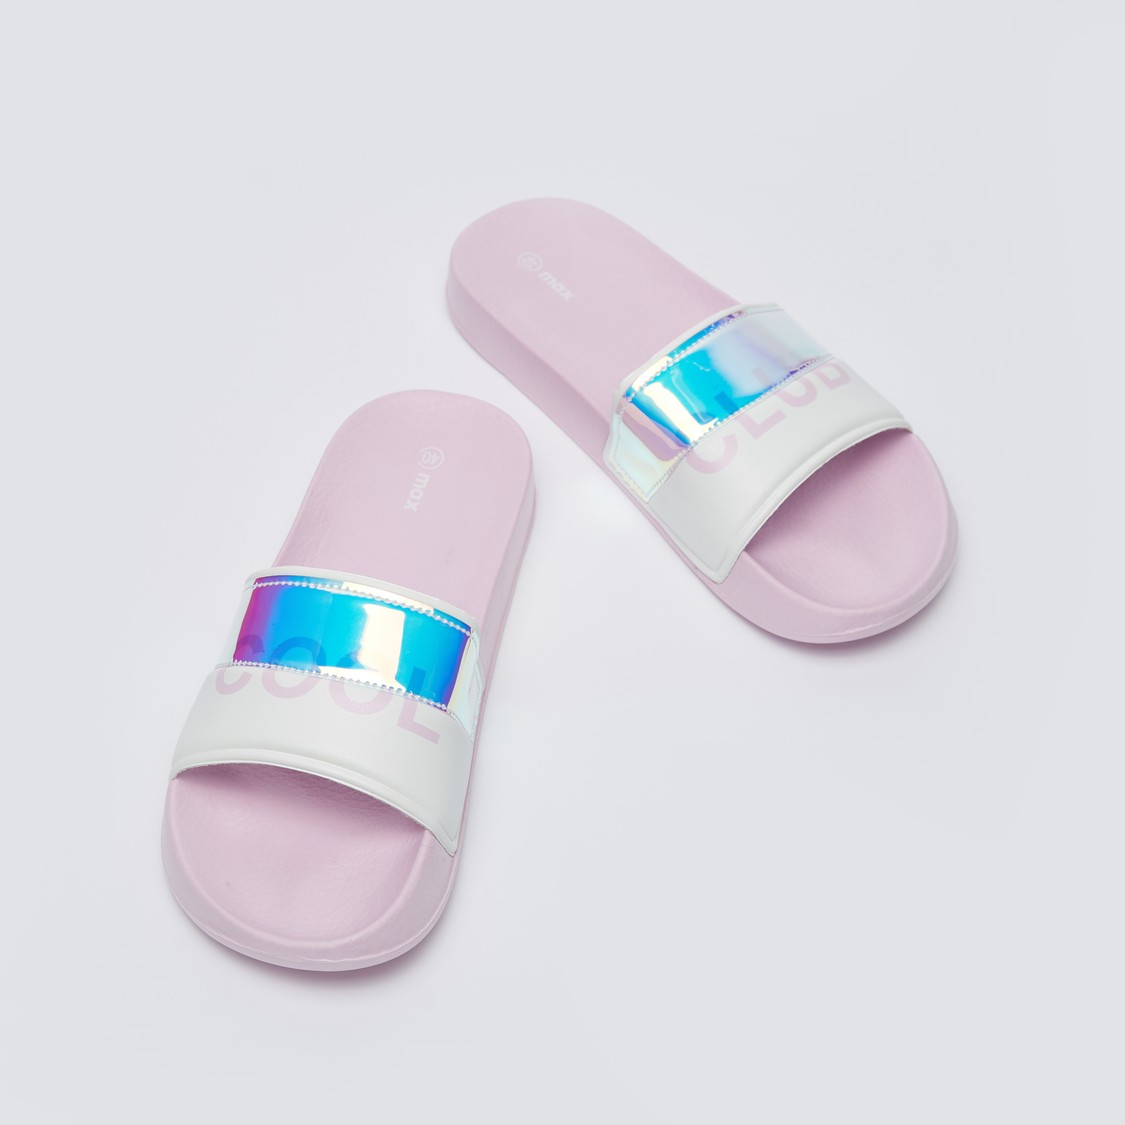 Printed Slide Slippers with Holographic Panel